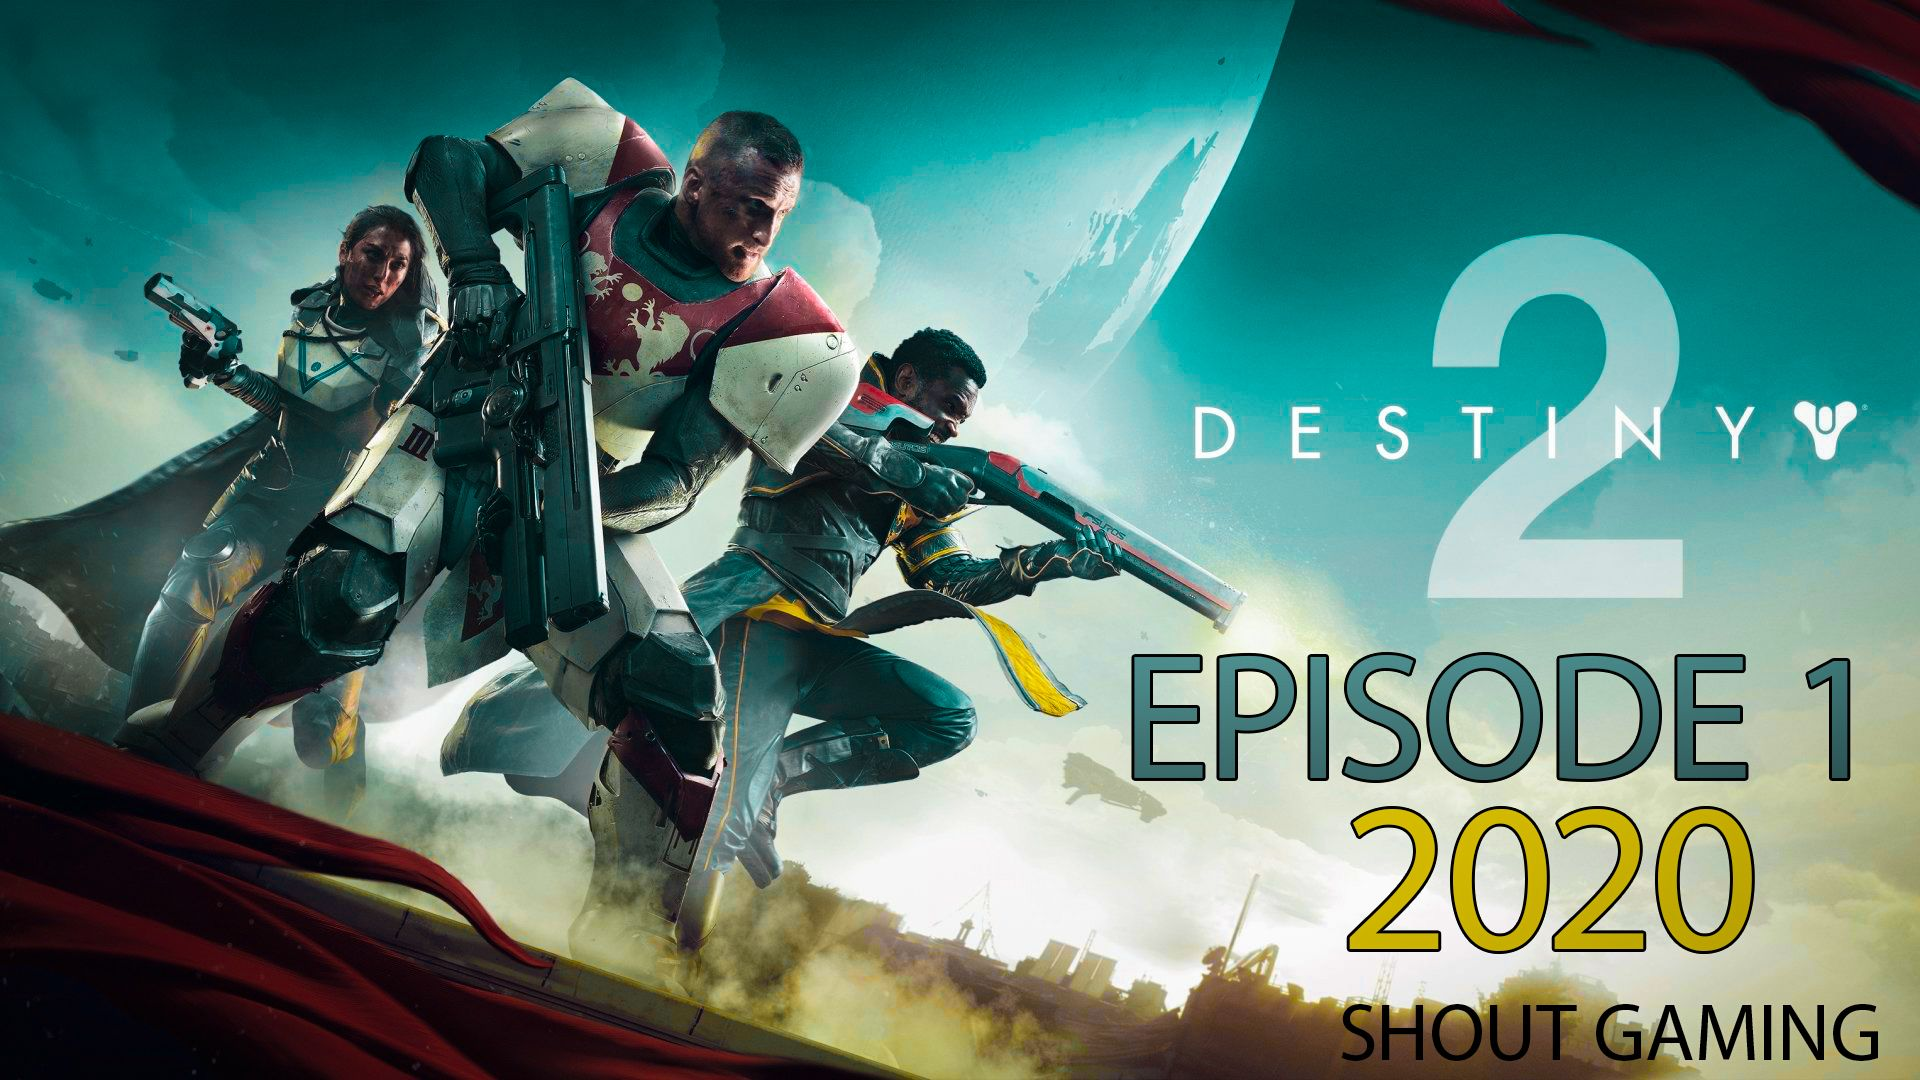 Destiny 2 Gameplay 2020 Destiny 2 Gameplay As A Warlock Episode 1 Destiny Add Music To Video Online Multiplayer Games